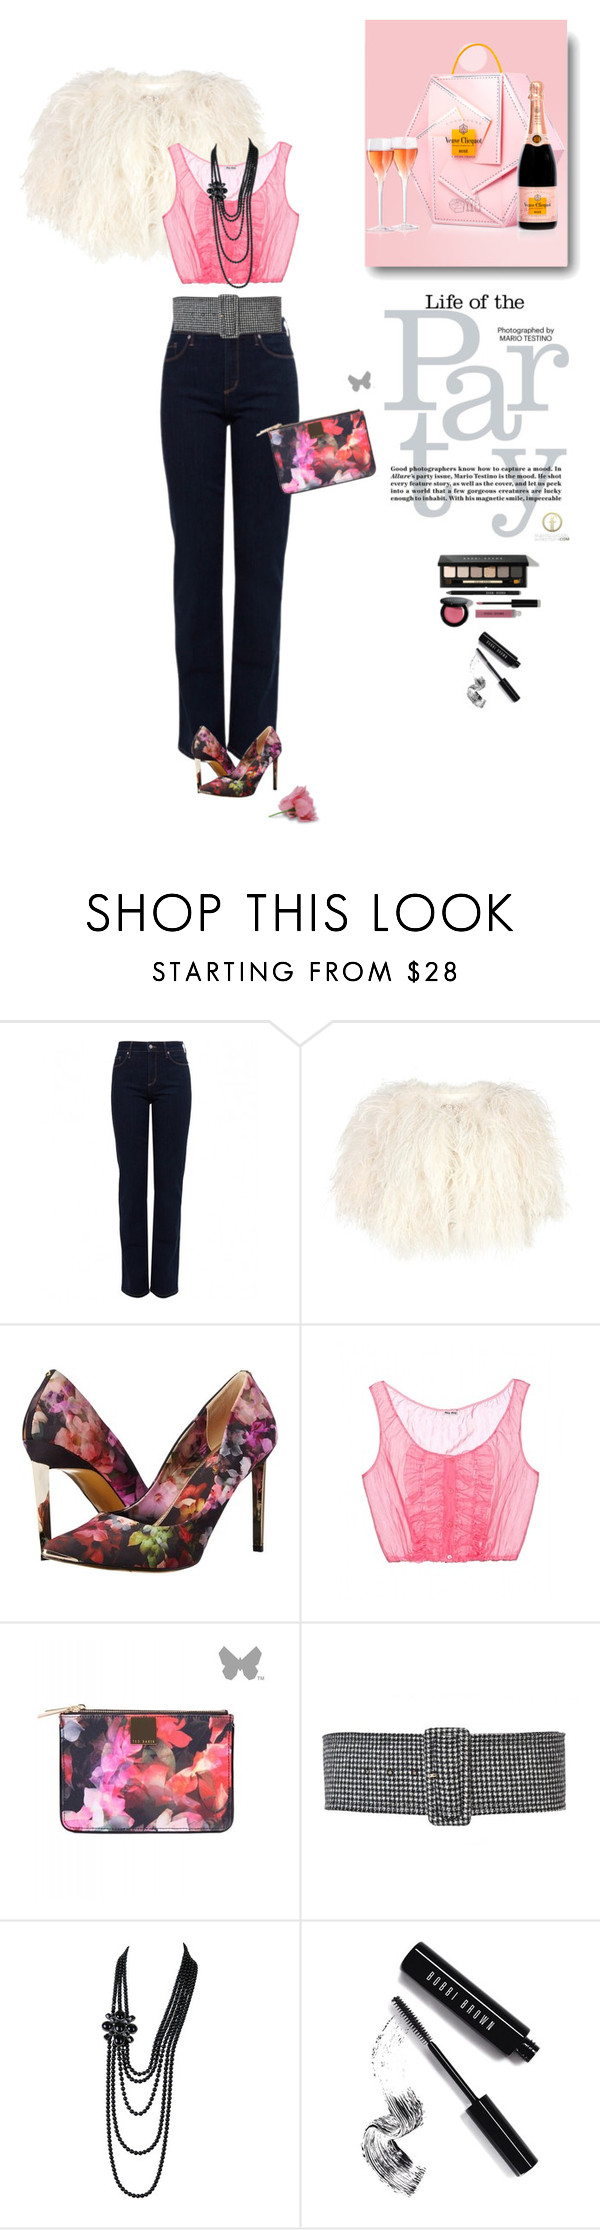 """""""1125"""" by m-lane ❤ liked on Polyvore featuring NYDJ, Ted Baker, Miu Miu, Rochas, Chanel and Bobbi Brown Cosmetics"""